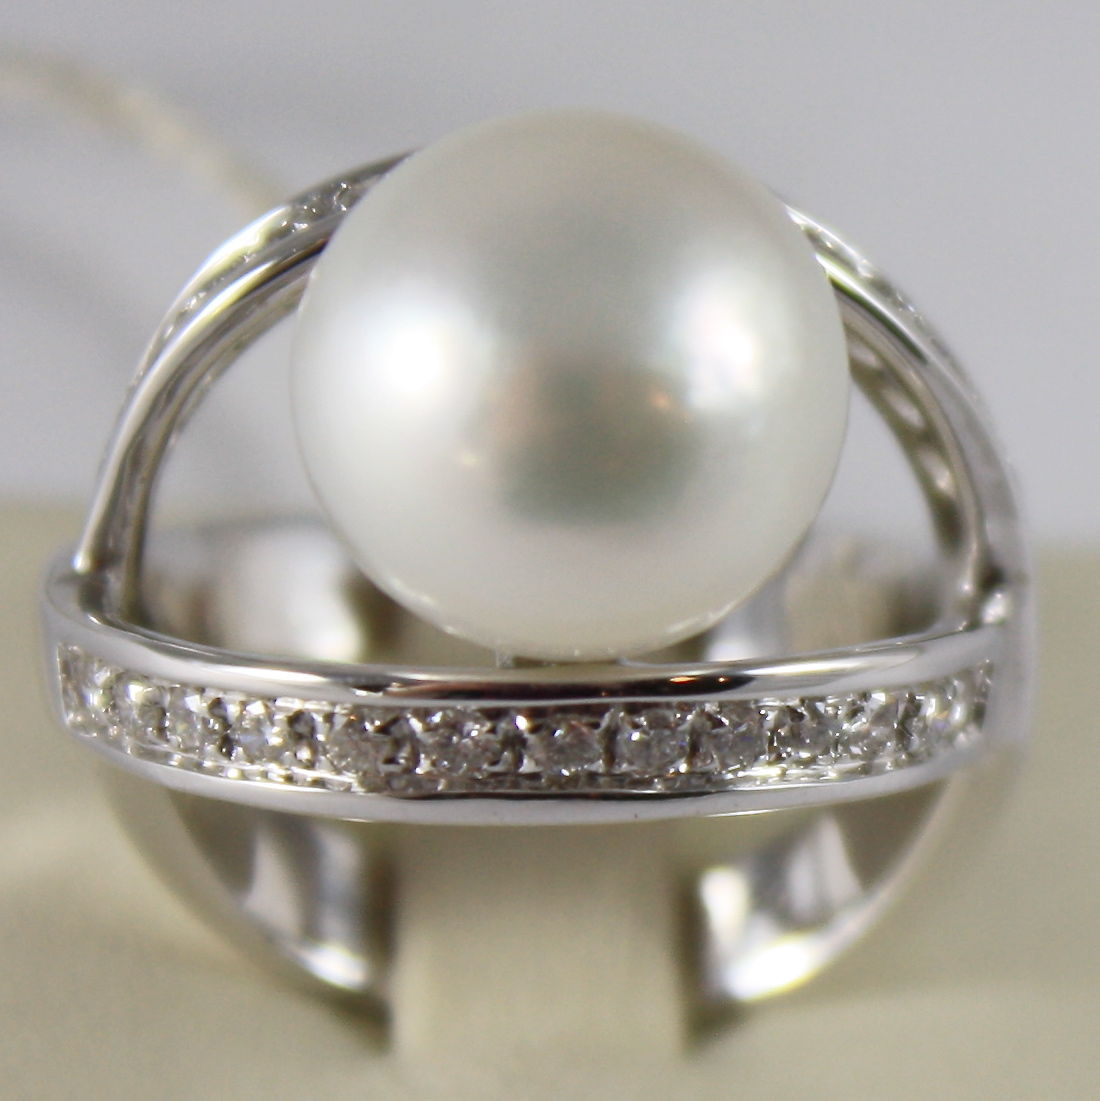 AMAZING SOLID 18K WHITE GOLD RING DIAMOND AND AUSTRALIAN PEARL DIAMETER 1.2 CM